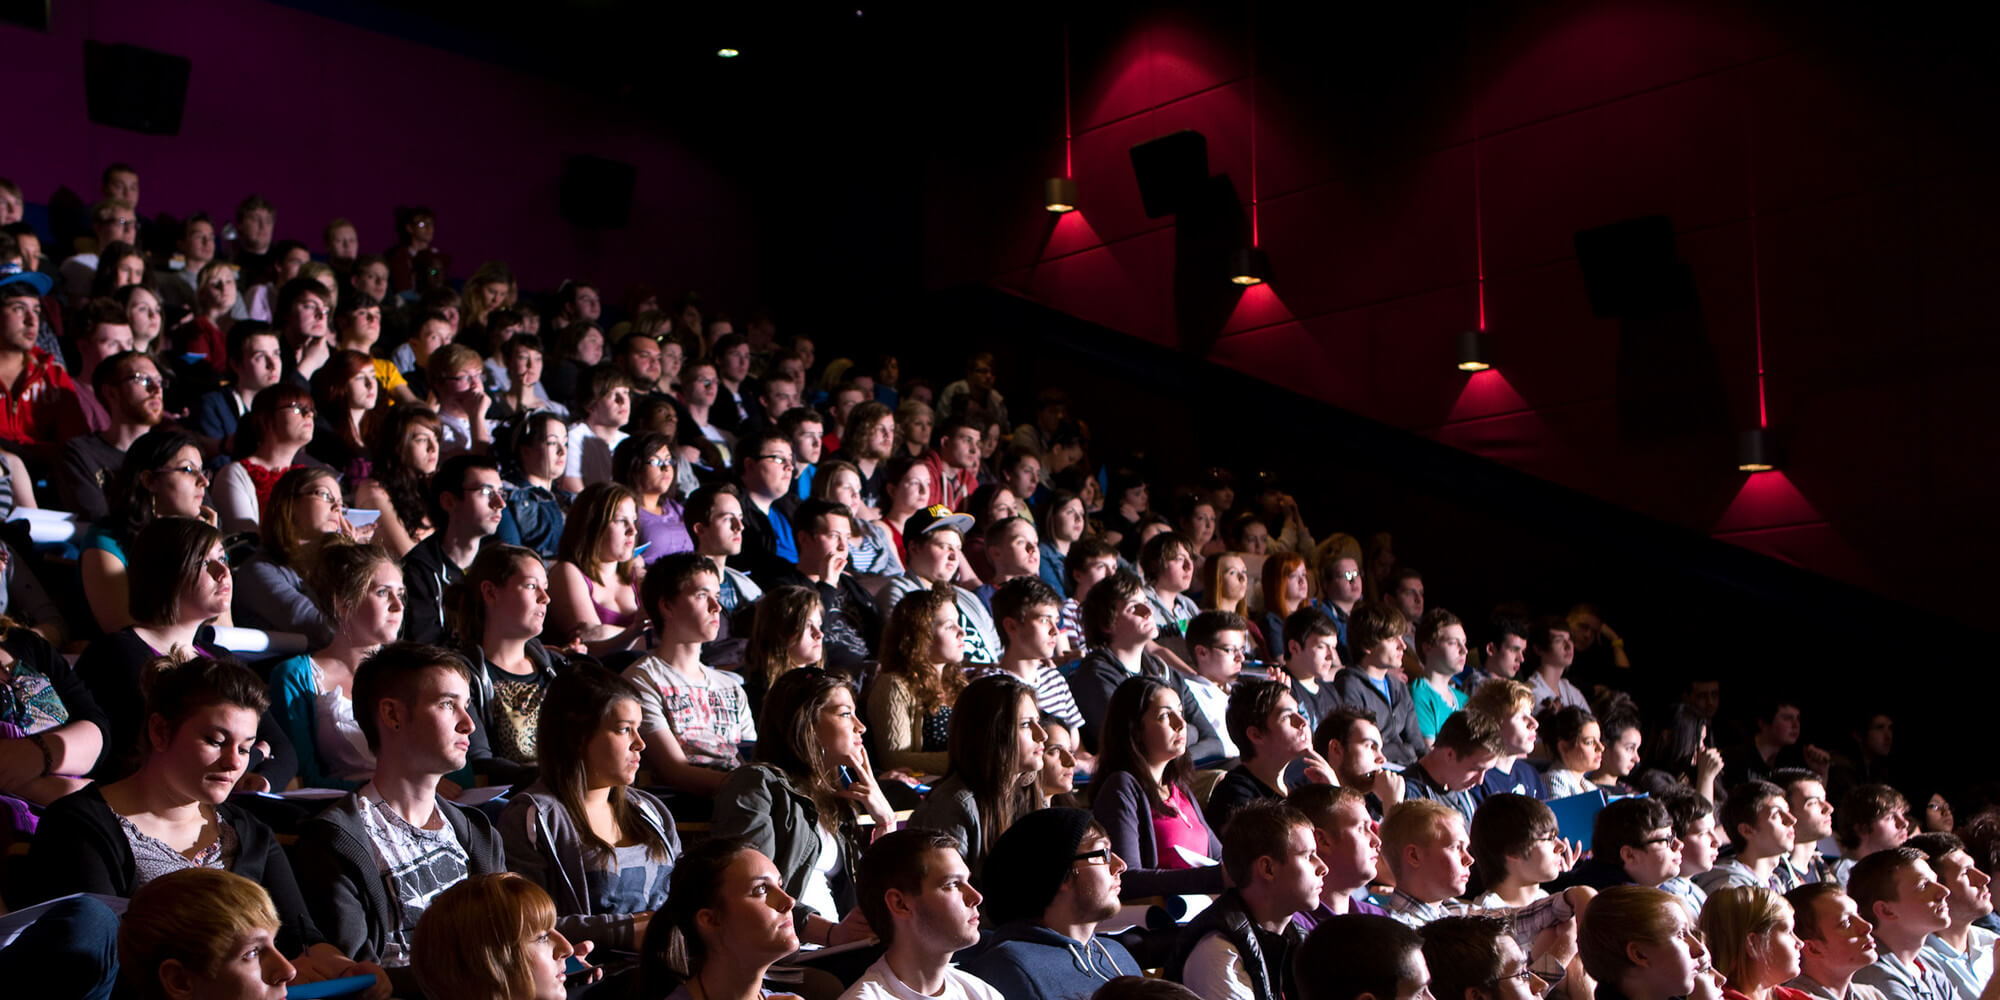 A crowd in the cinema